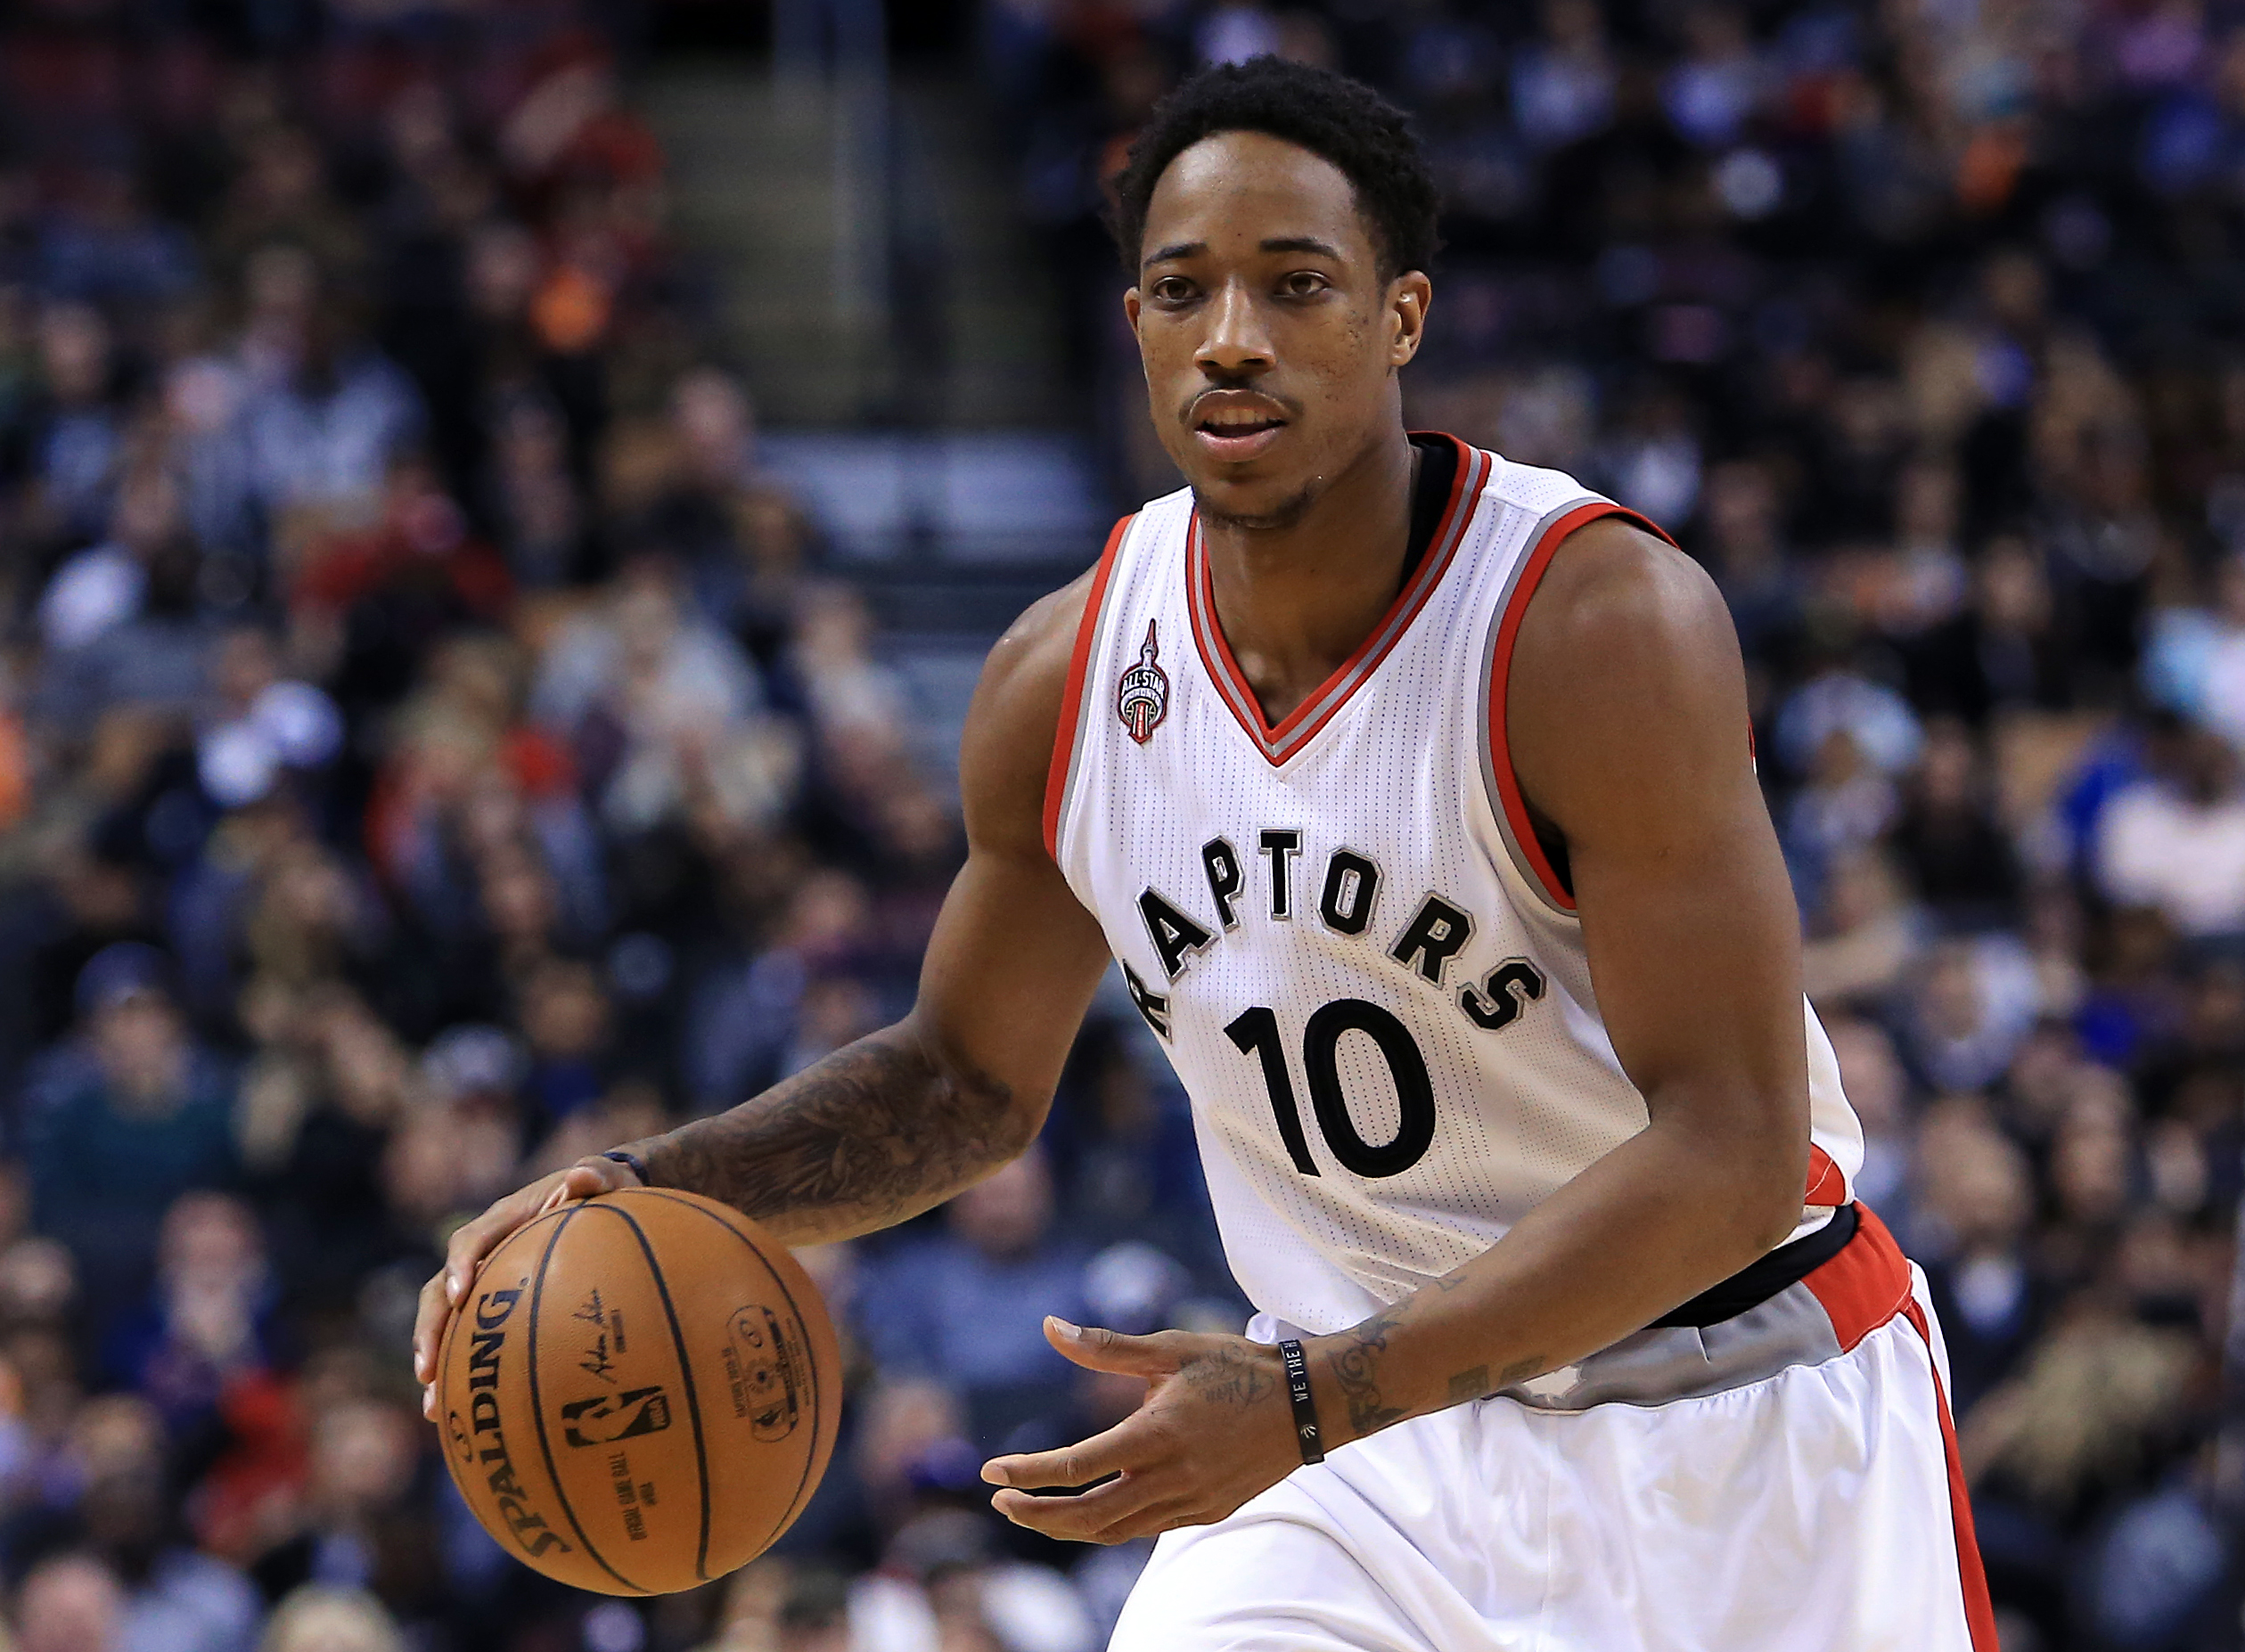 TORONTO, ON - APRIL 12:  DeMar DeRozan #10 of the Toronto Raptors dribbles the ball during the second half of an NBA game against the Philadelphia 76ers at the Air Canada Centre on April 12, 2016 in Toronto, Ontario, Canada.  (Photo by Vaughn Ridley/Getty